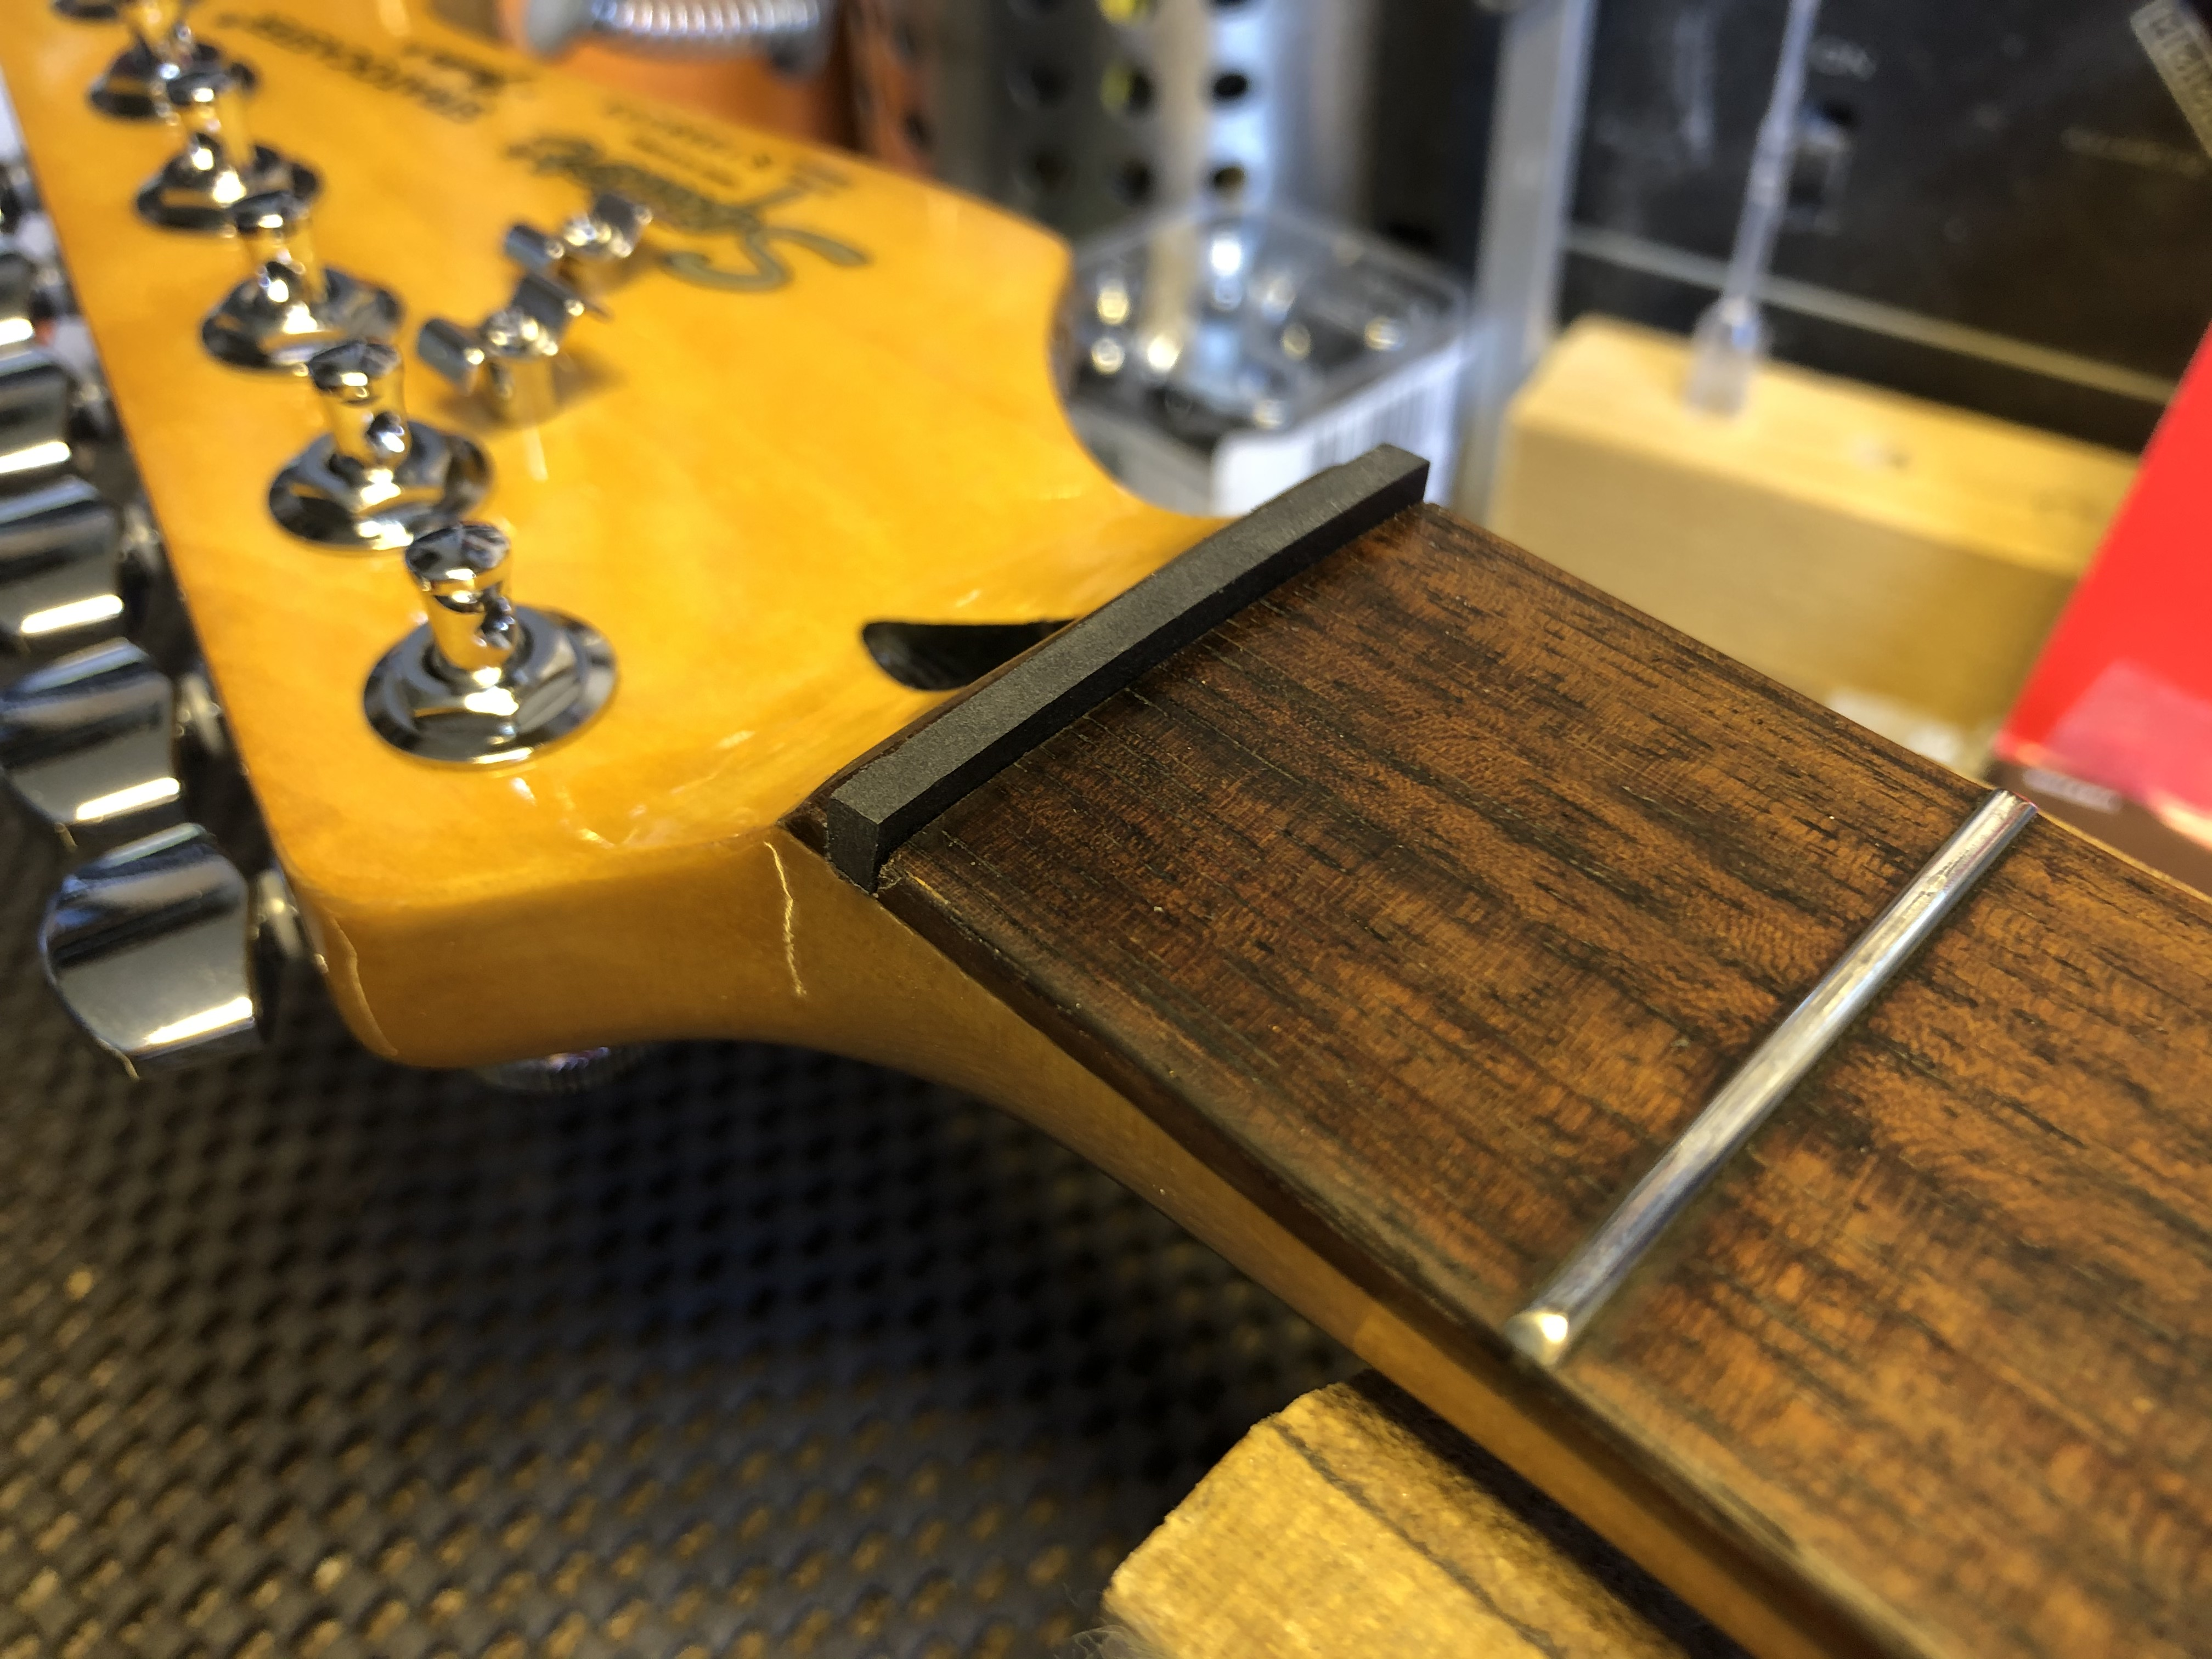 New Nut and Setup on Squire Strat